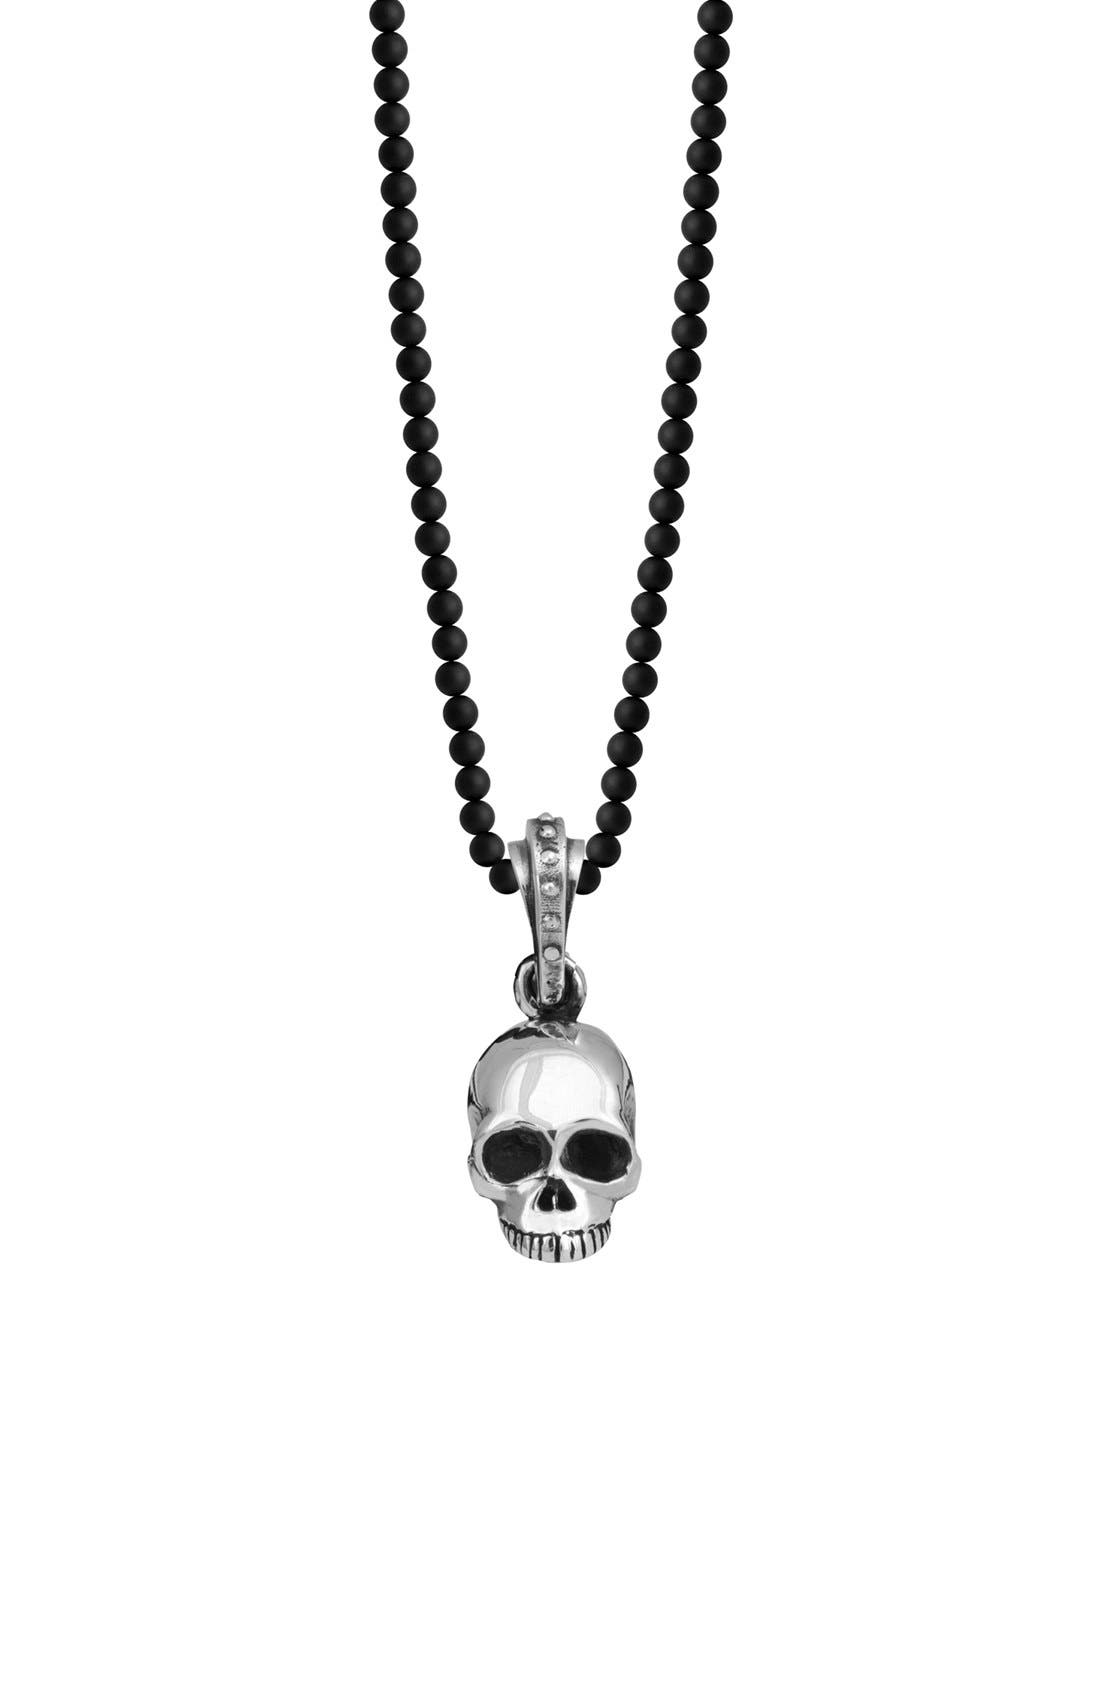 'Hamlet' Sterling Silver & Onyx Skull Pendant Necklace,                         Main,                         color, Silver/ Black